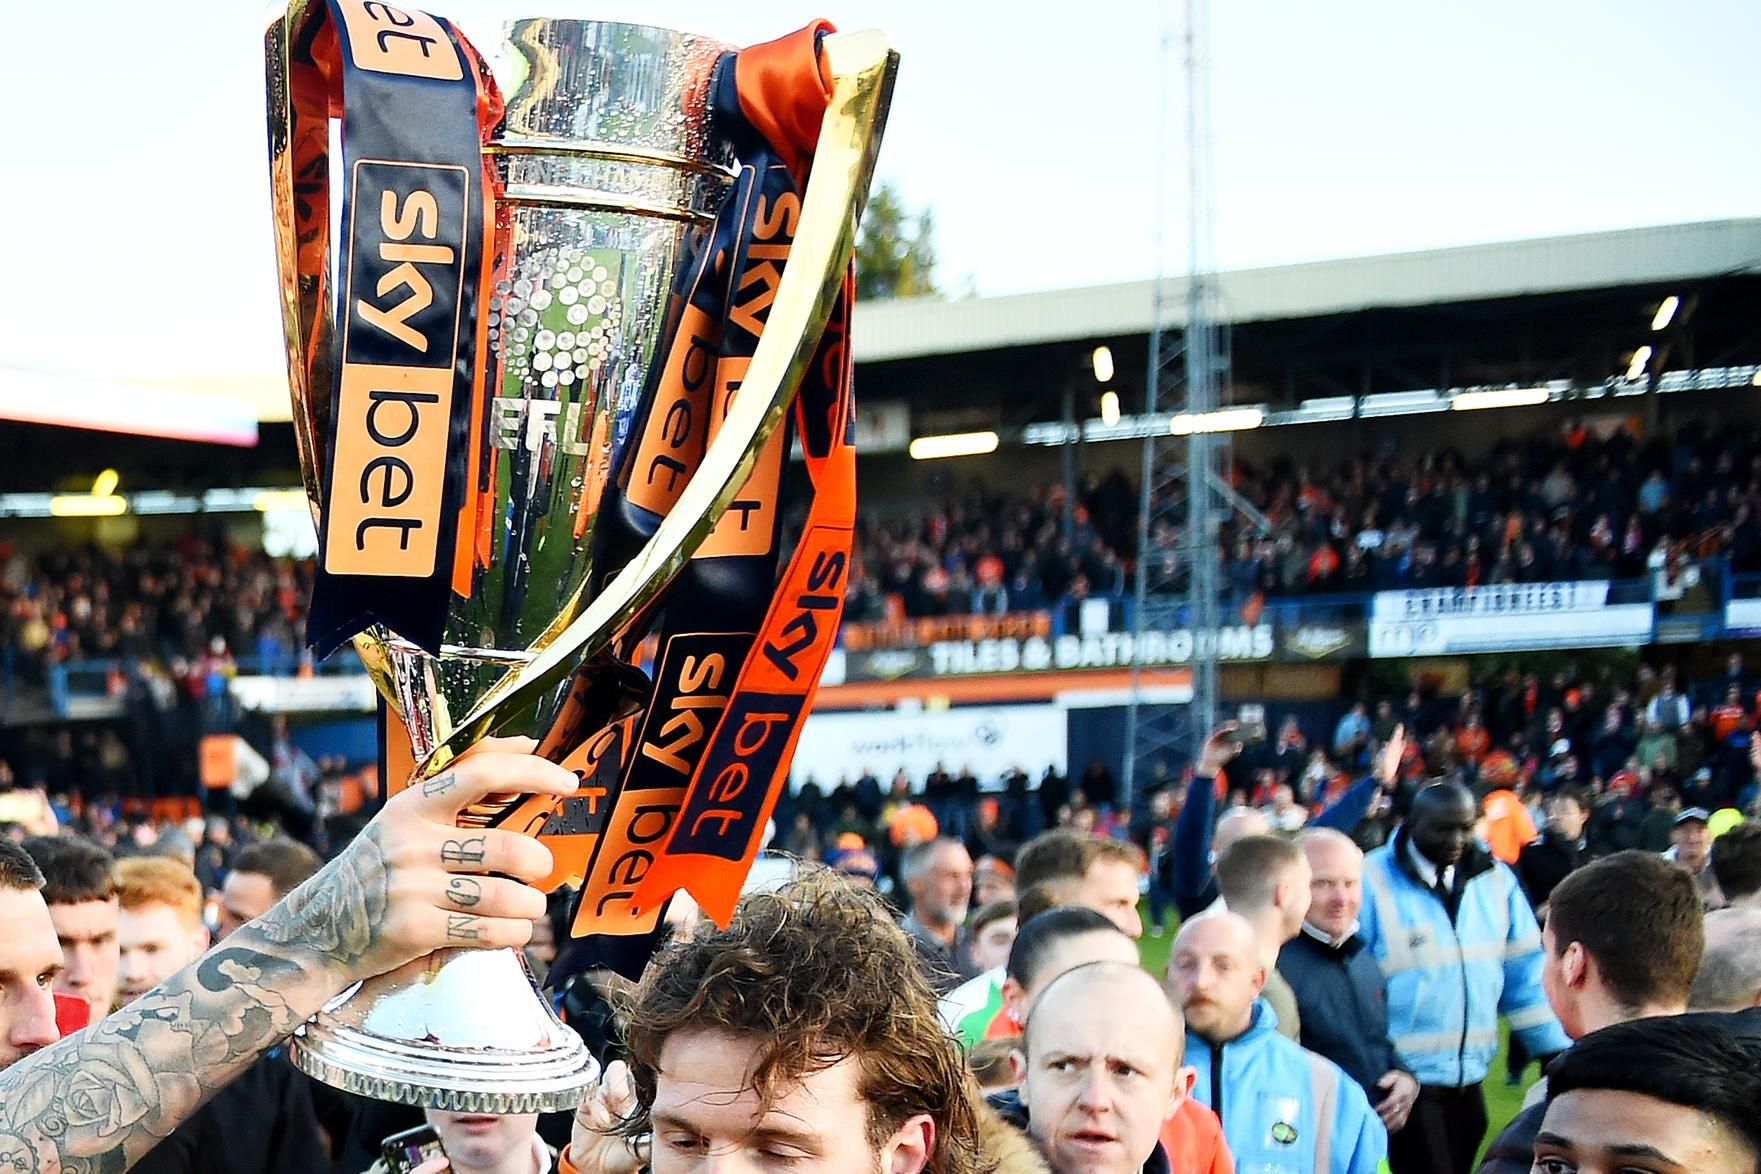 LUTON, ENGLAND - MAY 04: Glen Rea and teammate Sonny Bradley of Luton Town celebrate their side winning the league after the Sky Bet League One match between Luton Town and Oxford United at Kenilworth Road on May 04, 2019 in Luton, United Kingdom. (Photo by Nathan Stirk/Getty Images)